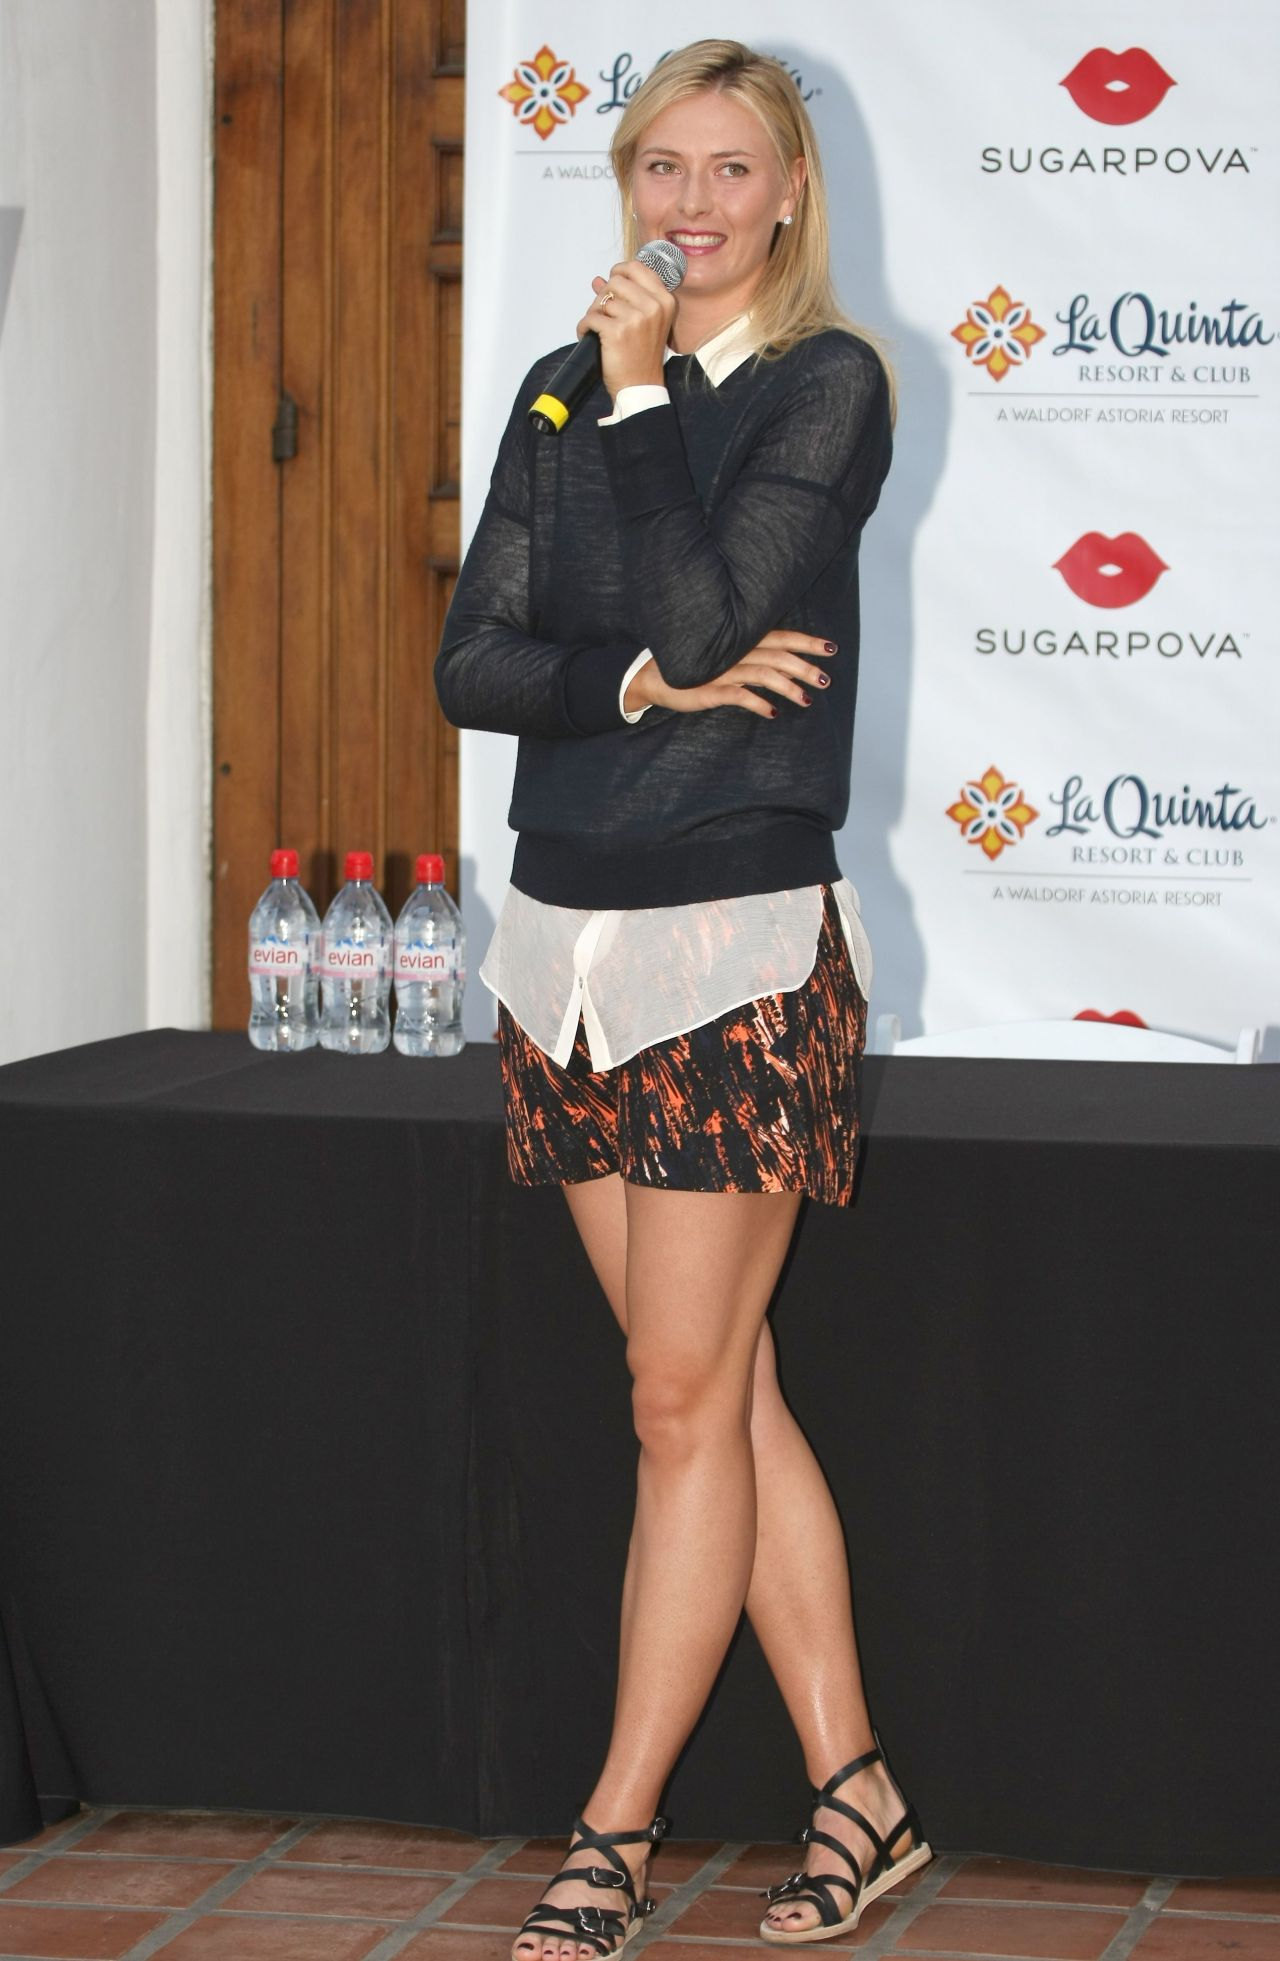 Maria Sharapova - Sugapova photocall, La Quinta, California, March 2014